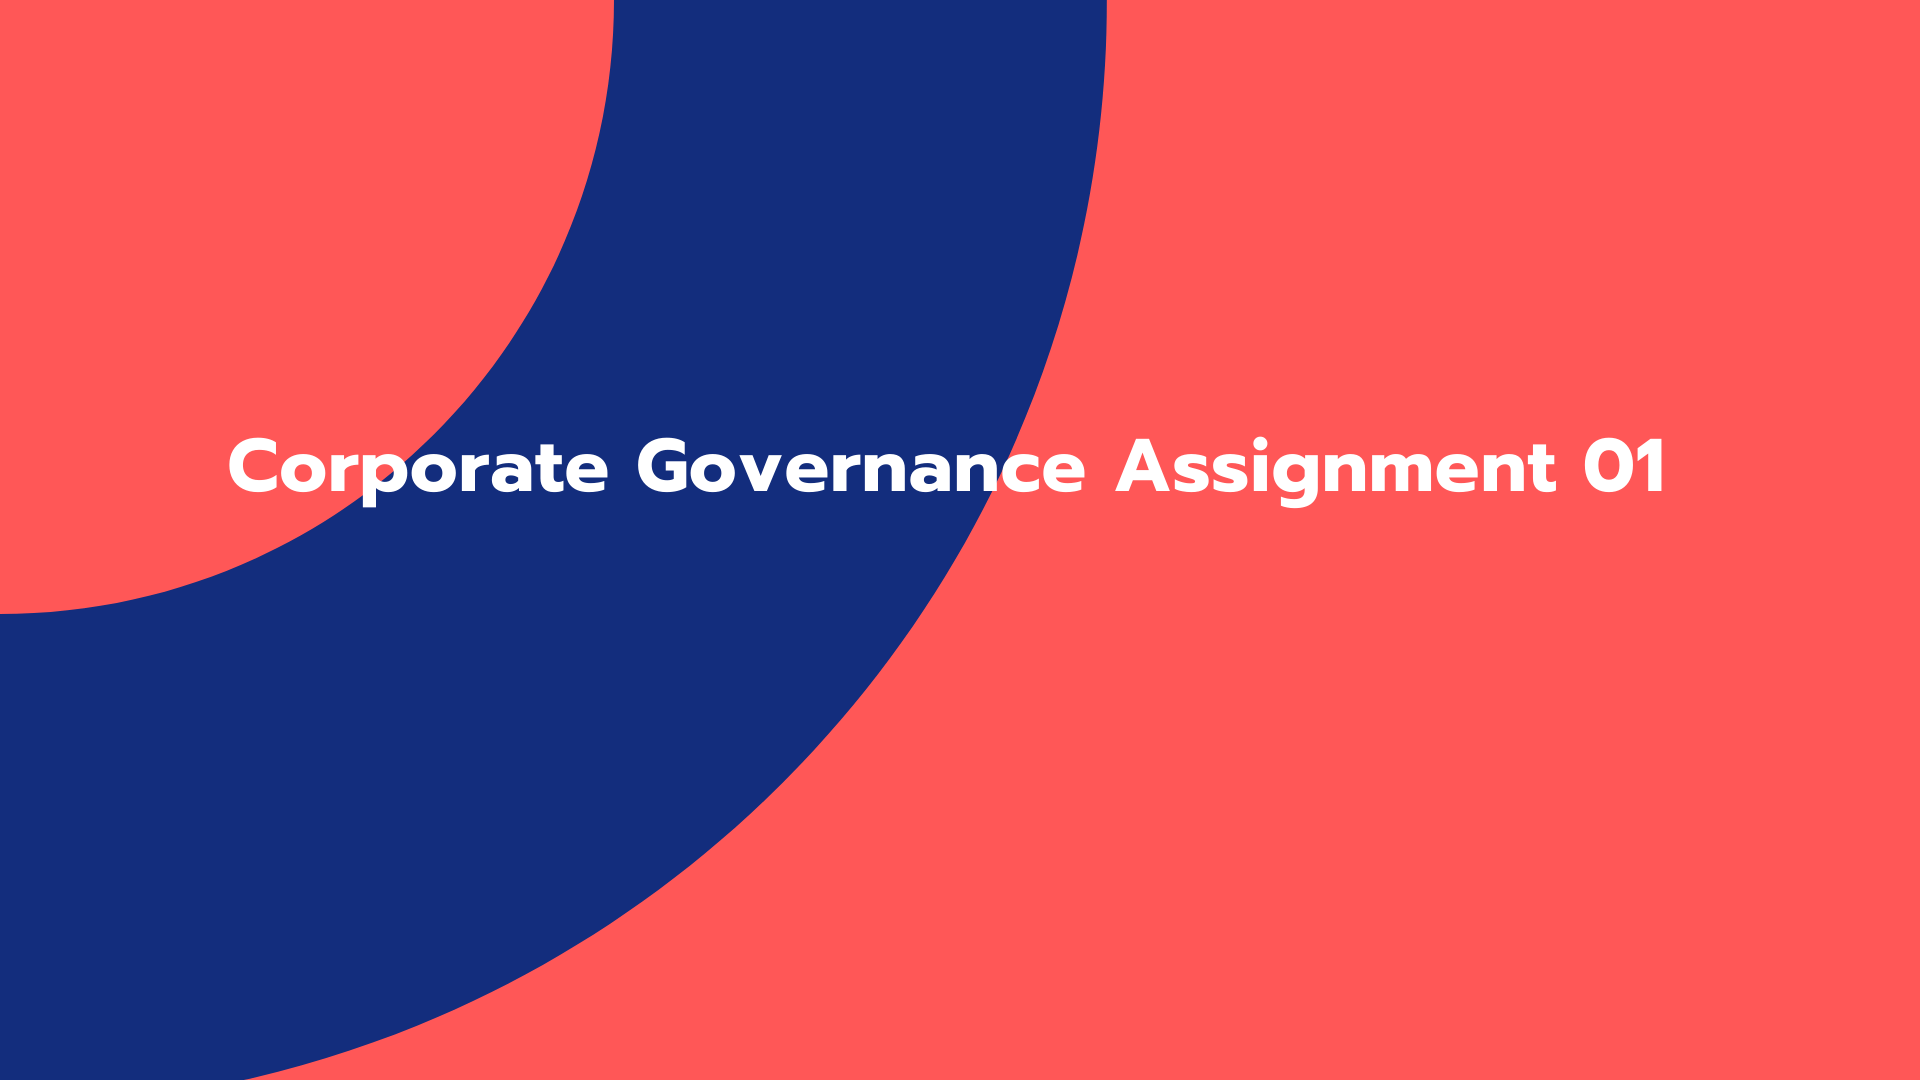 Corporate Governance Assignment 01